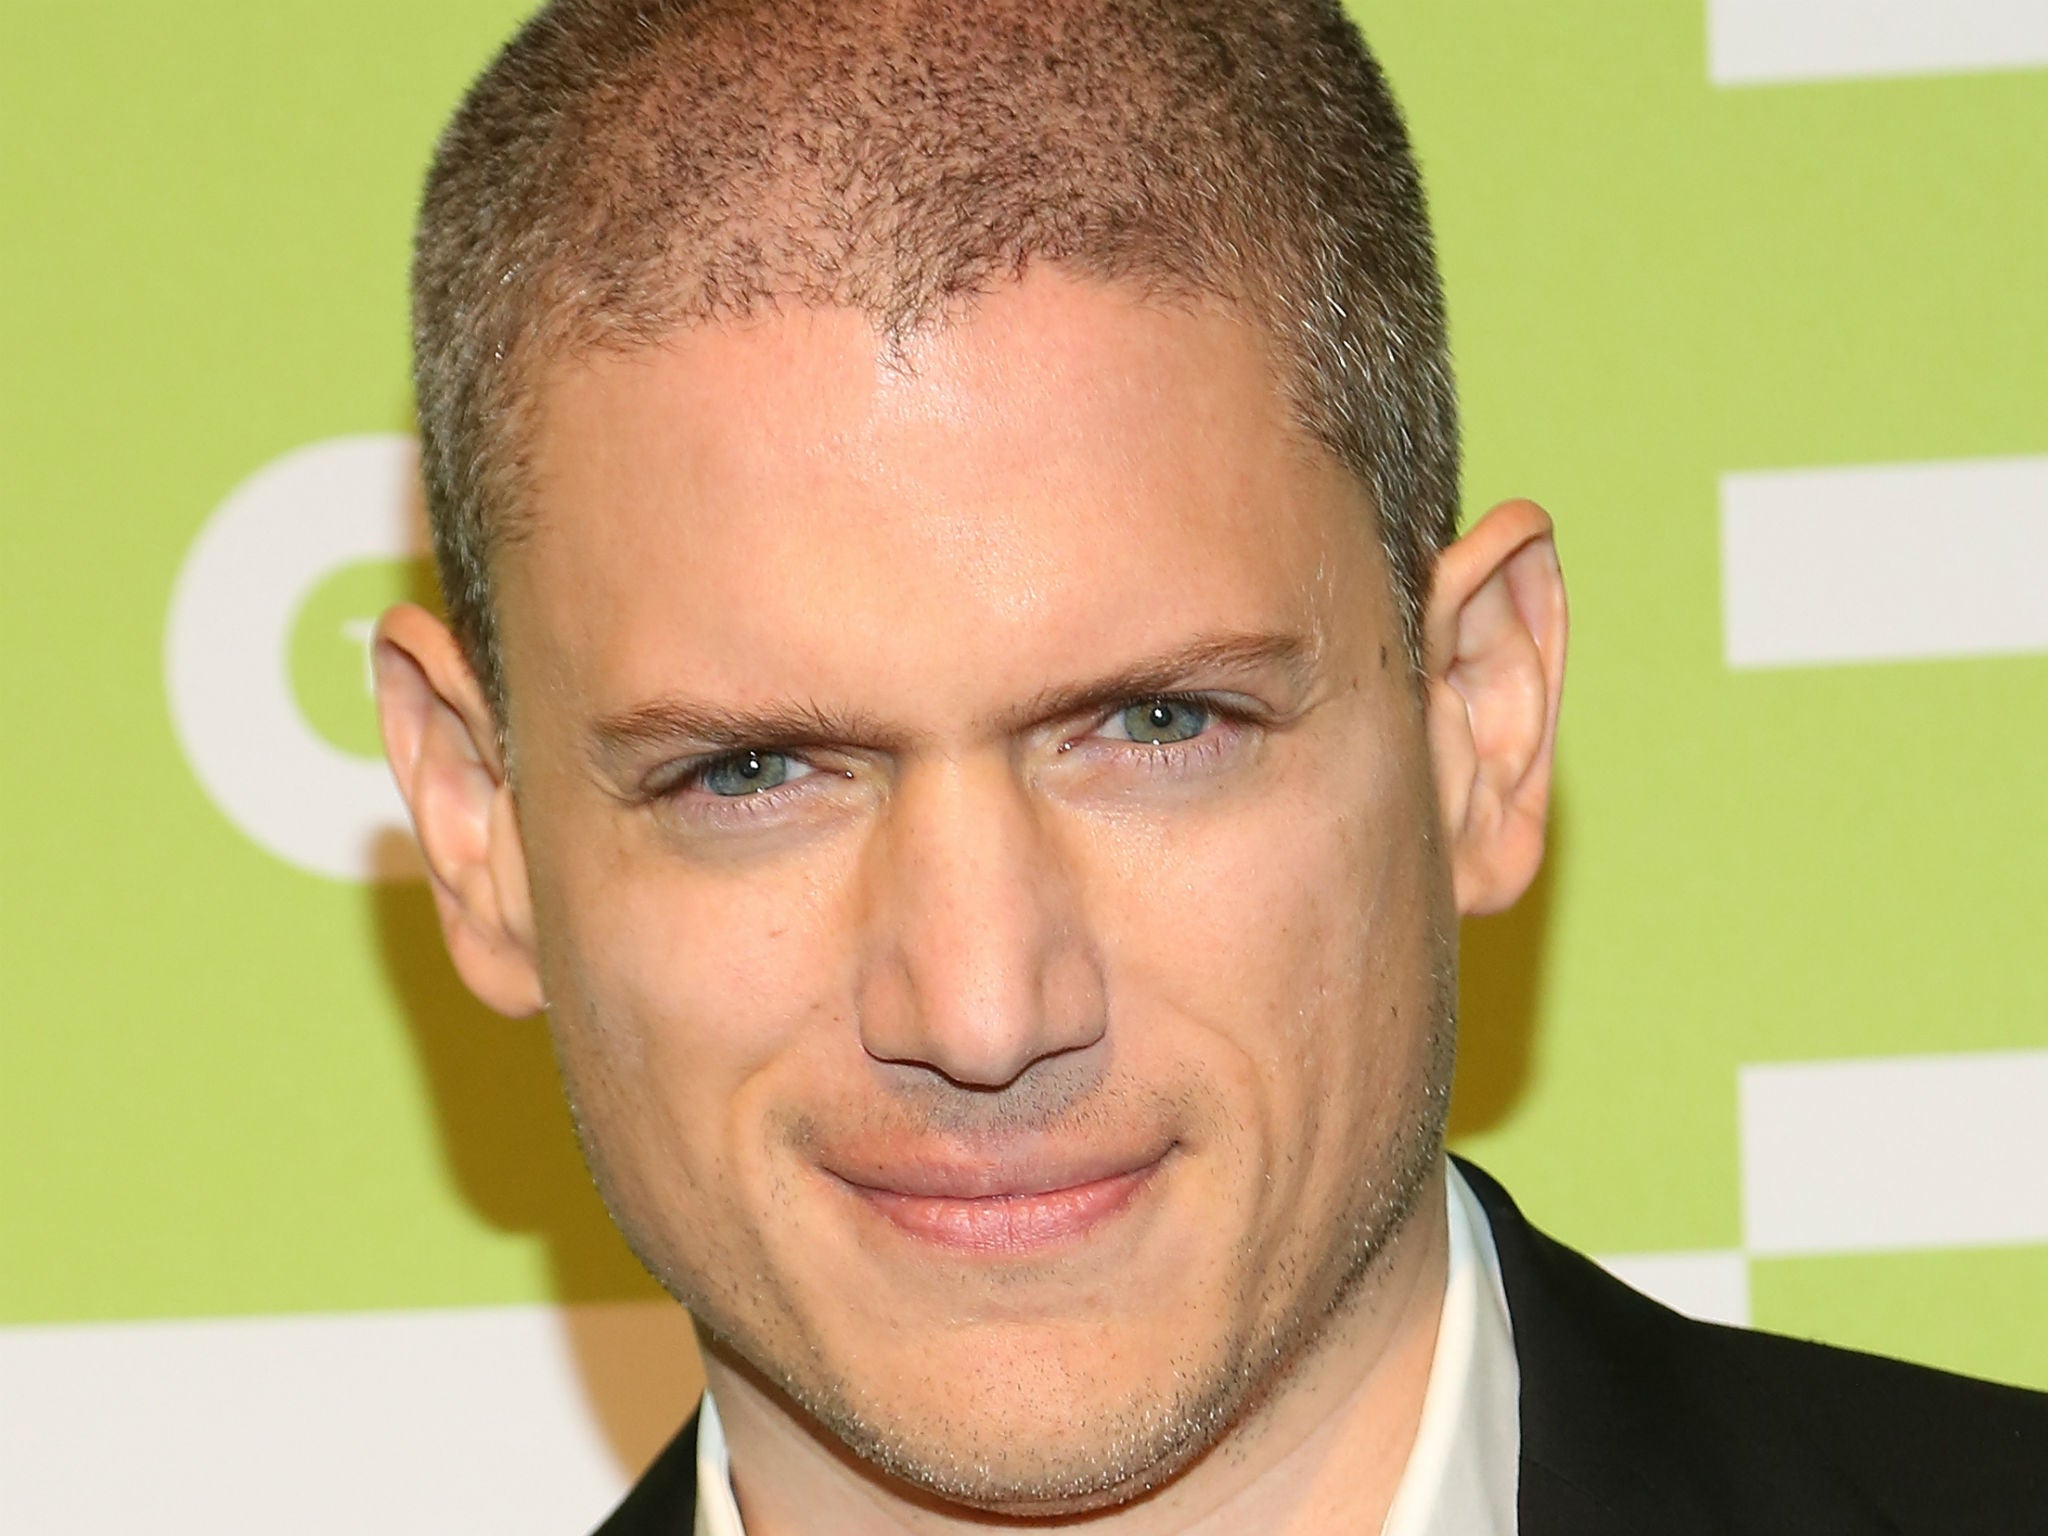 Wentworth Miller Prison Break Actor Pens Essay On Mental Health  Wentworth Miller Prison Break Actor Pens Essay On Mental Health In  Response To Bodyshaming Facebook Meme  The Independent